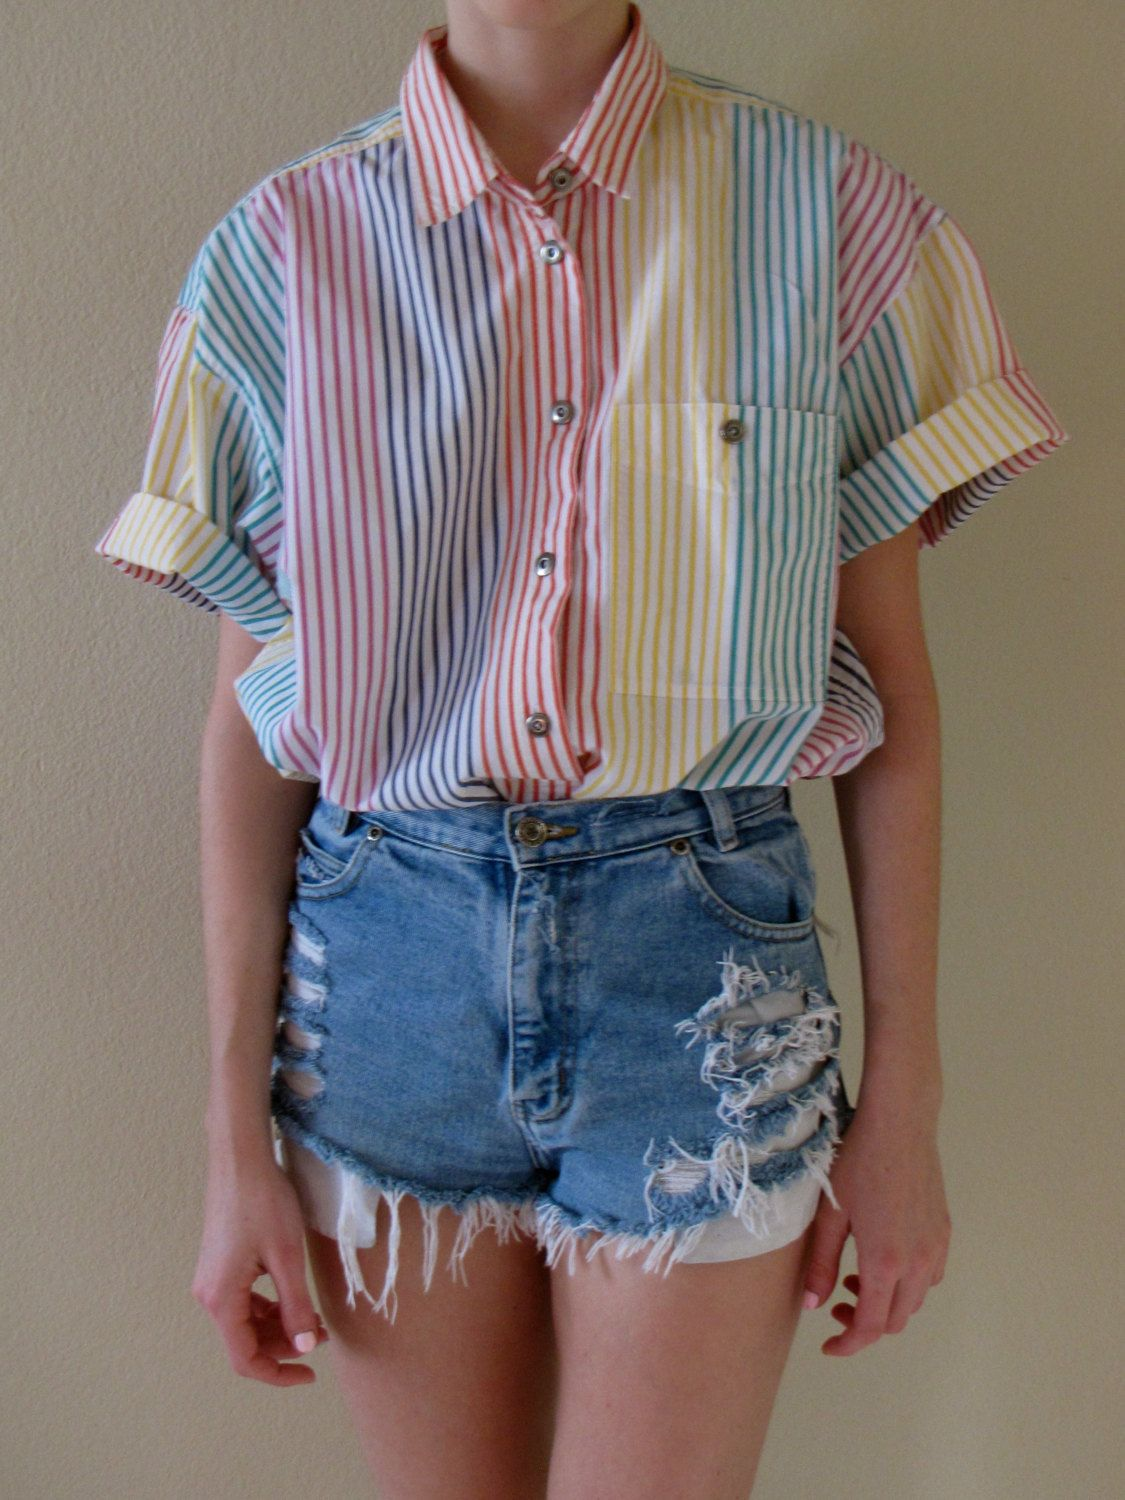 80s style shorts